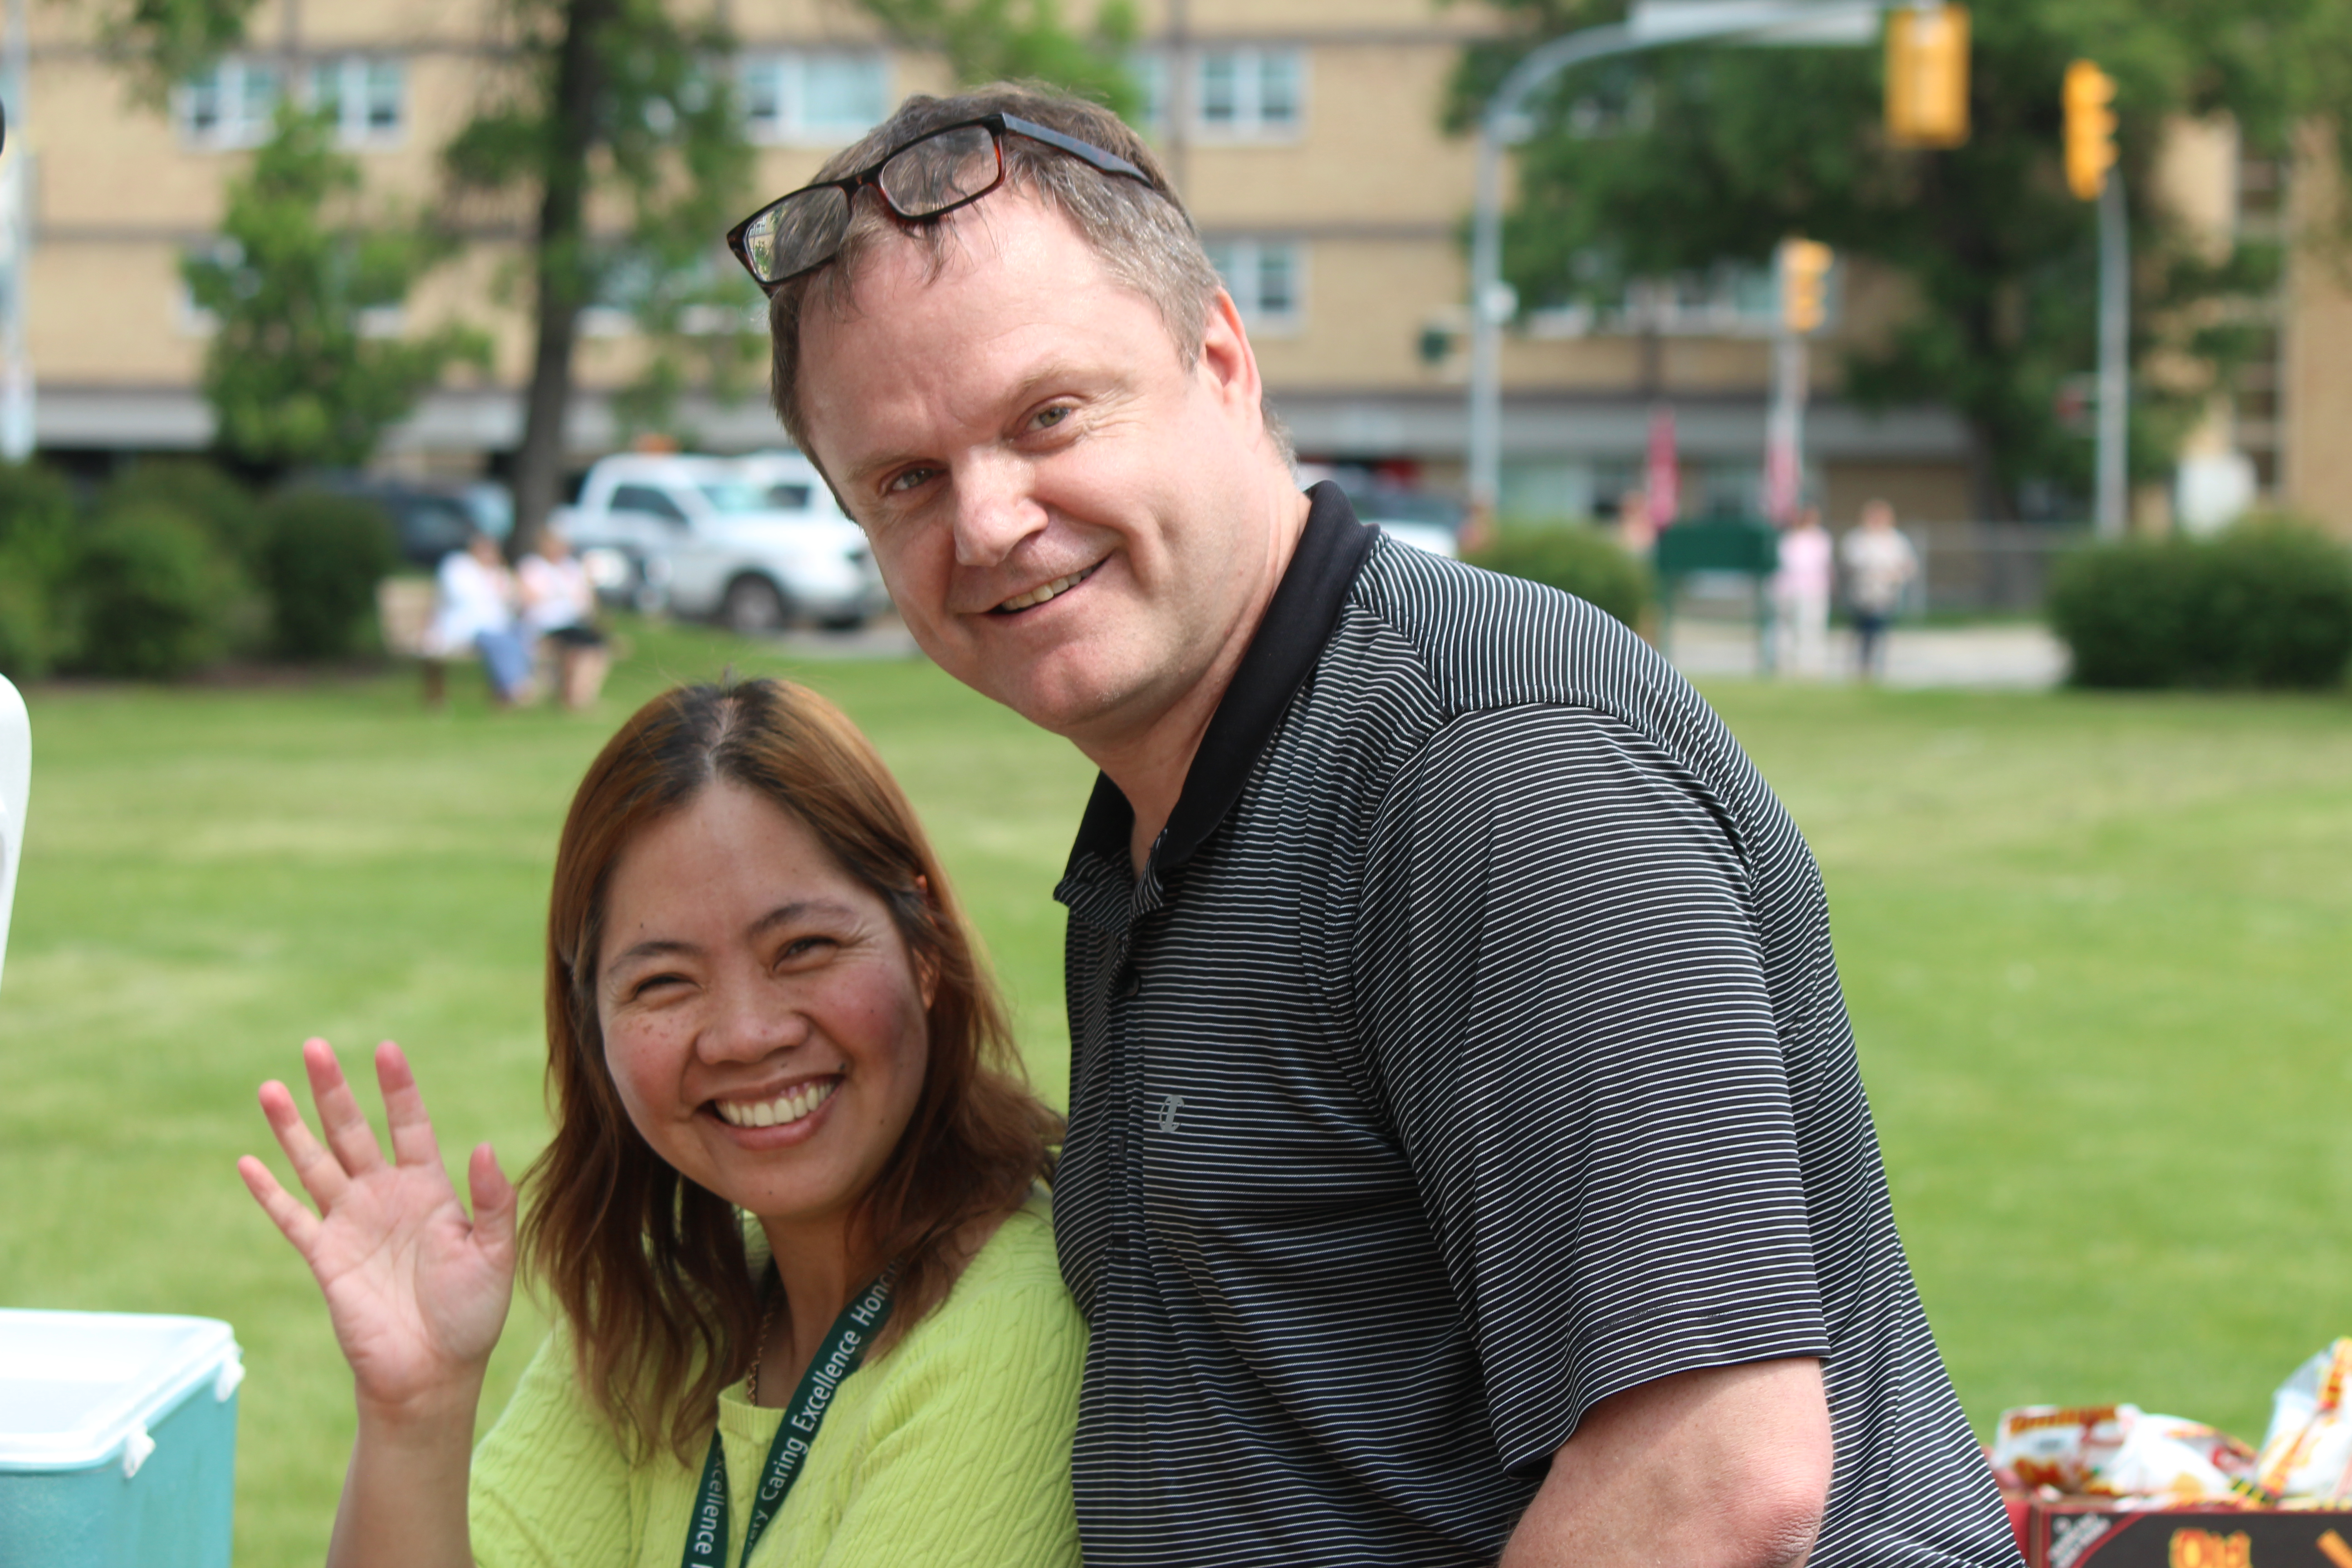 Local 1550 President with Mylin, a hardworking volunteer from the CUPE Local 500, WRHA group.